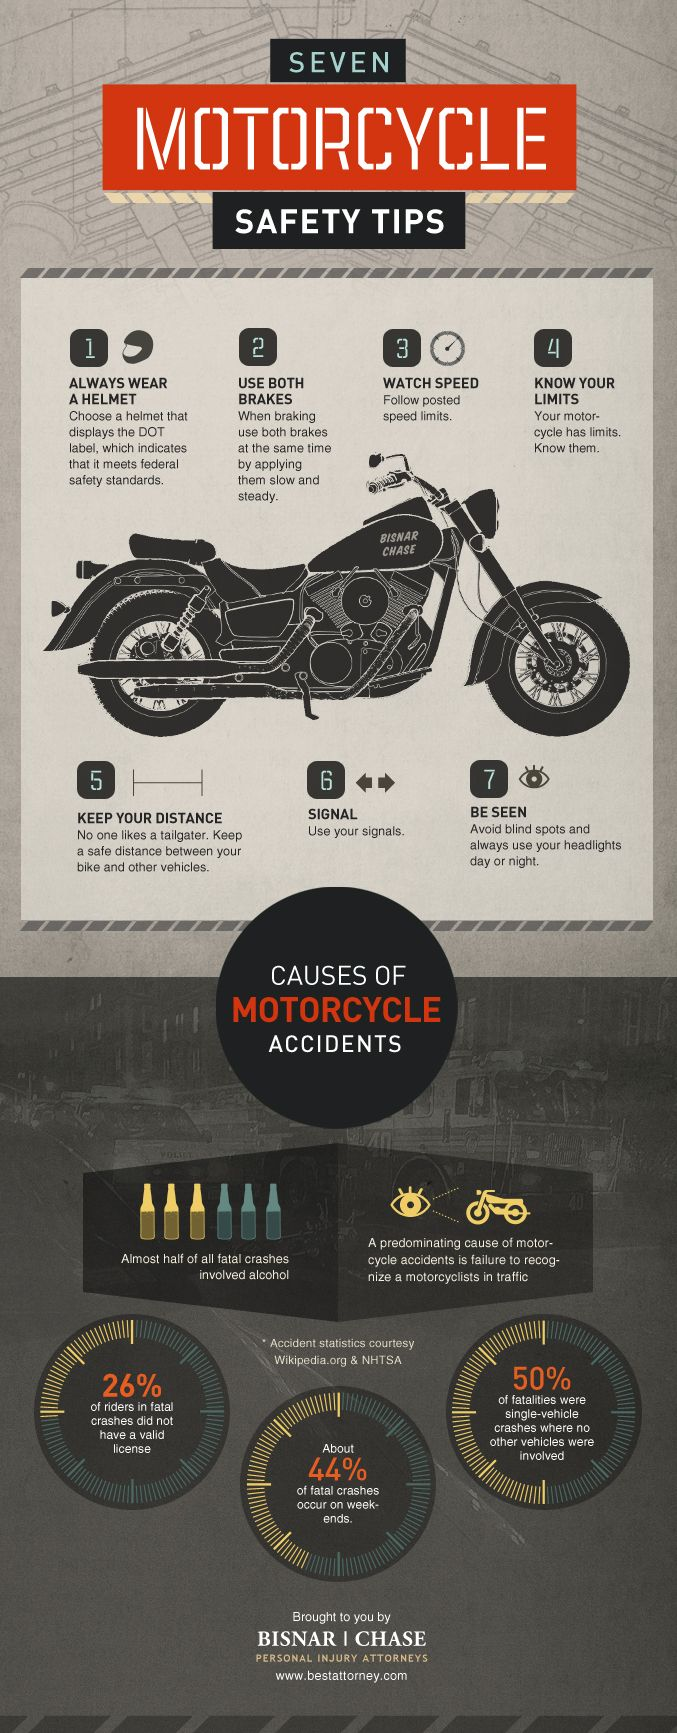 Motorcycle Safety Tips From Bisnar Chase Motorcycle Accident Lawyers Infographic Motorcycle